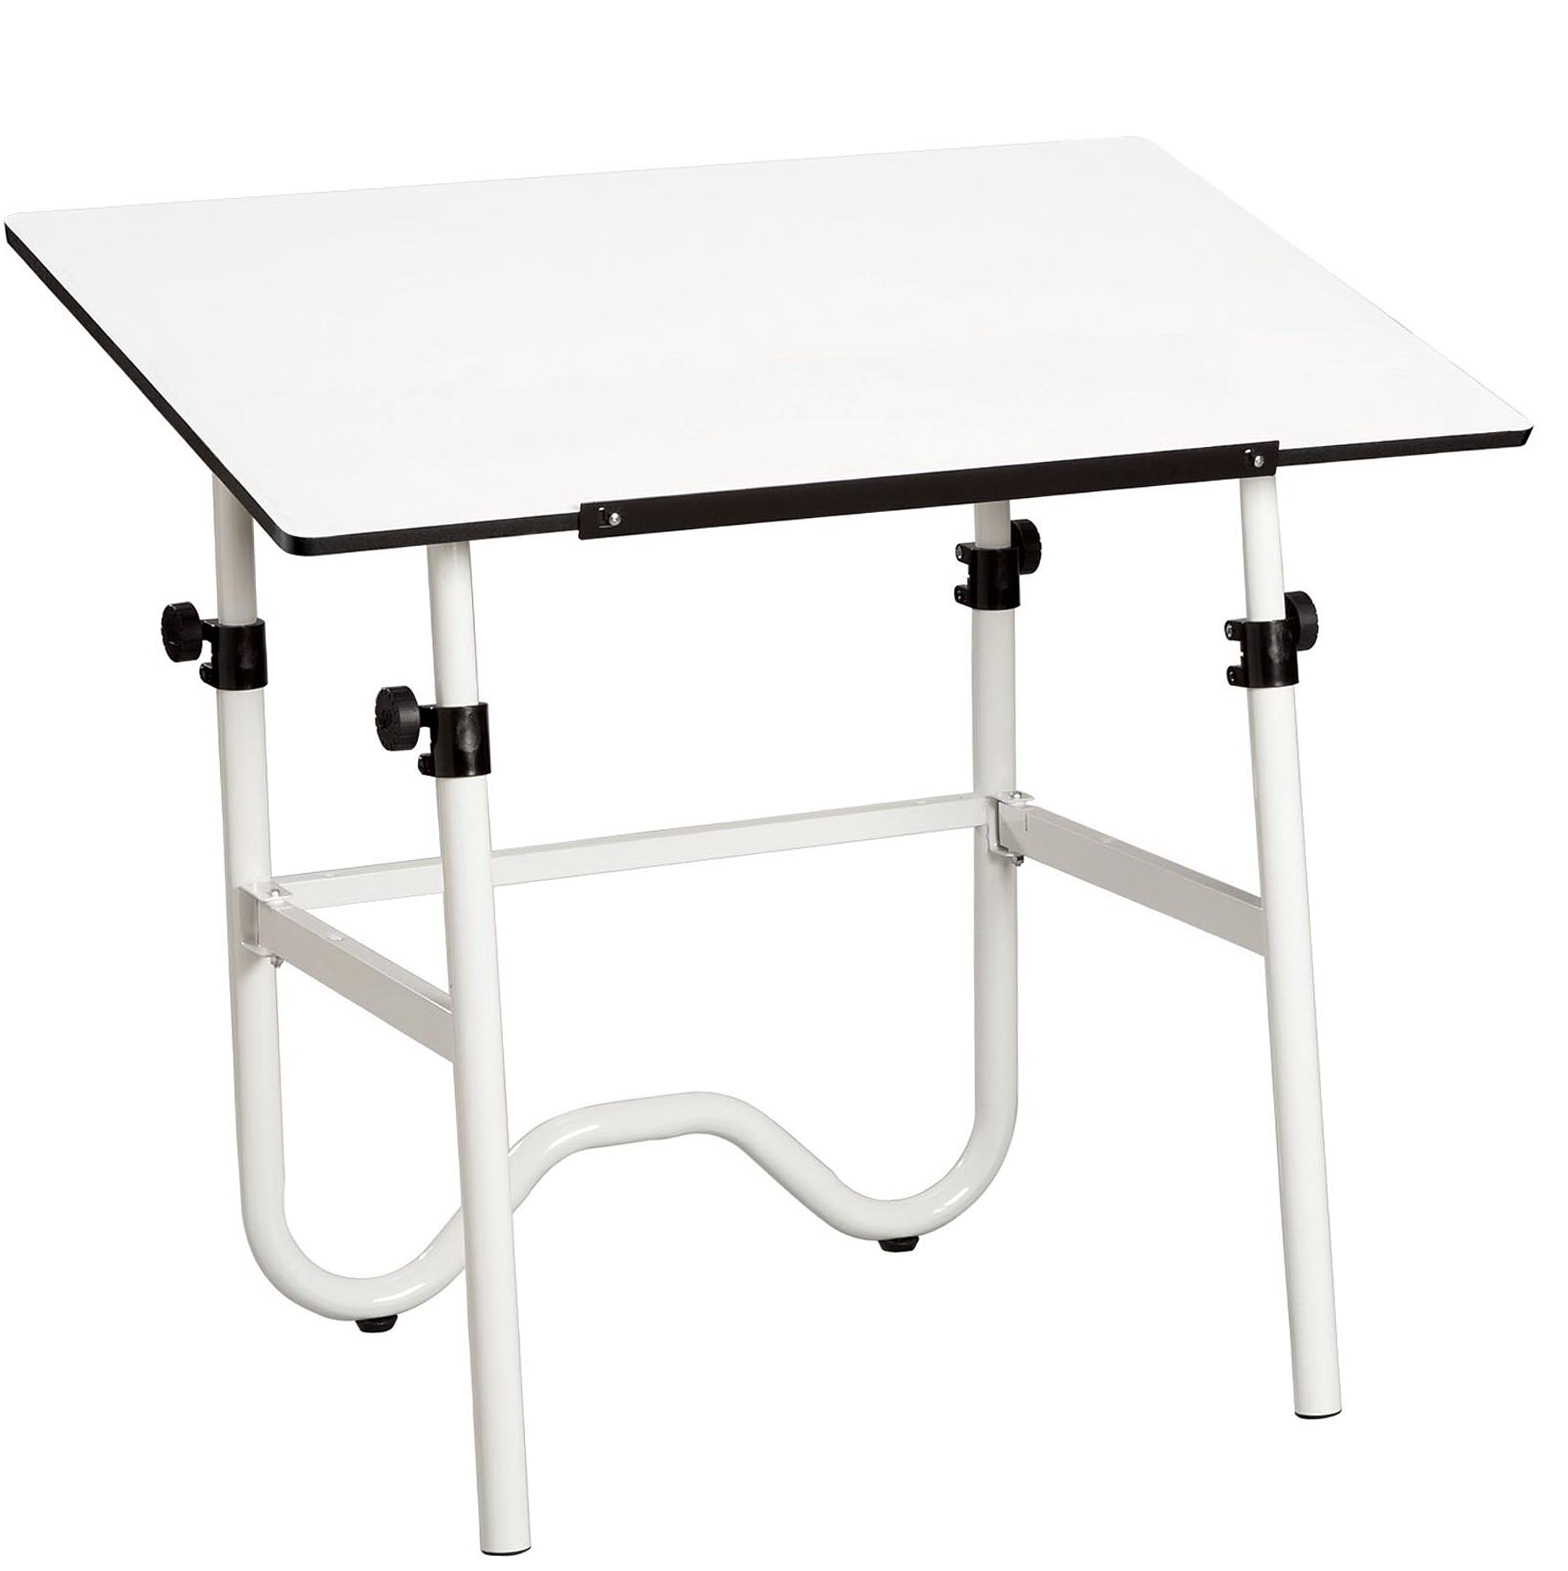 Folding side table ikea home design ideas - Ikea uk folding table ...